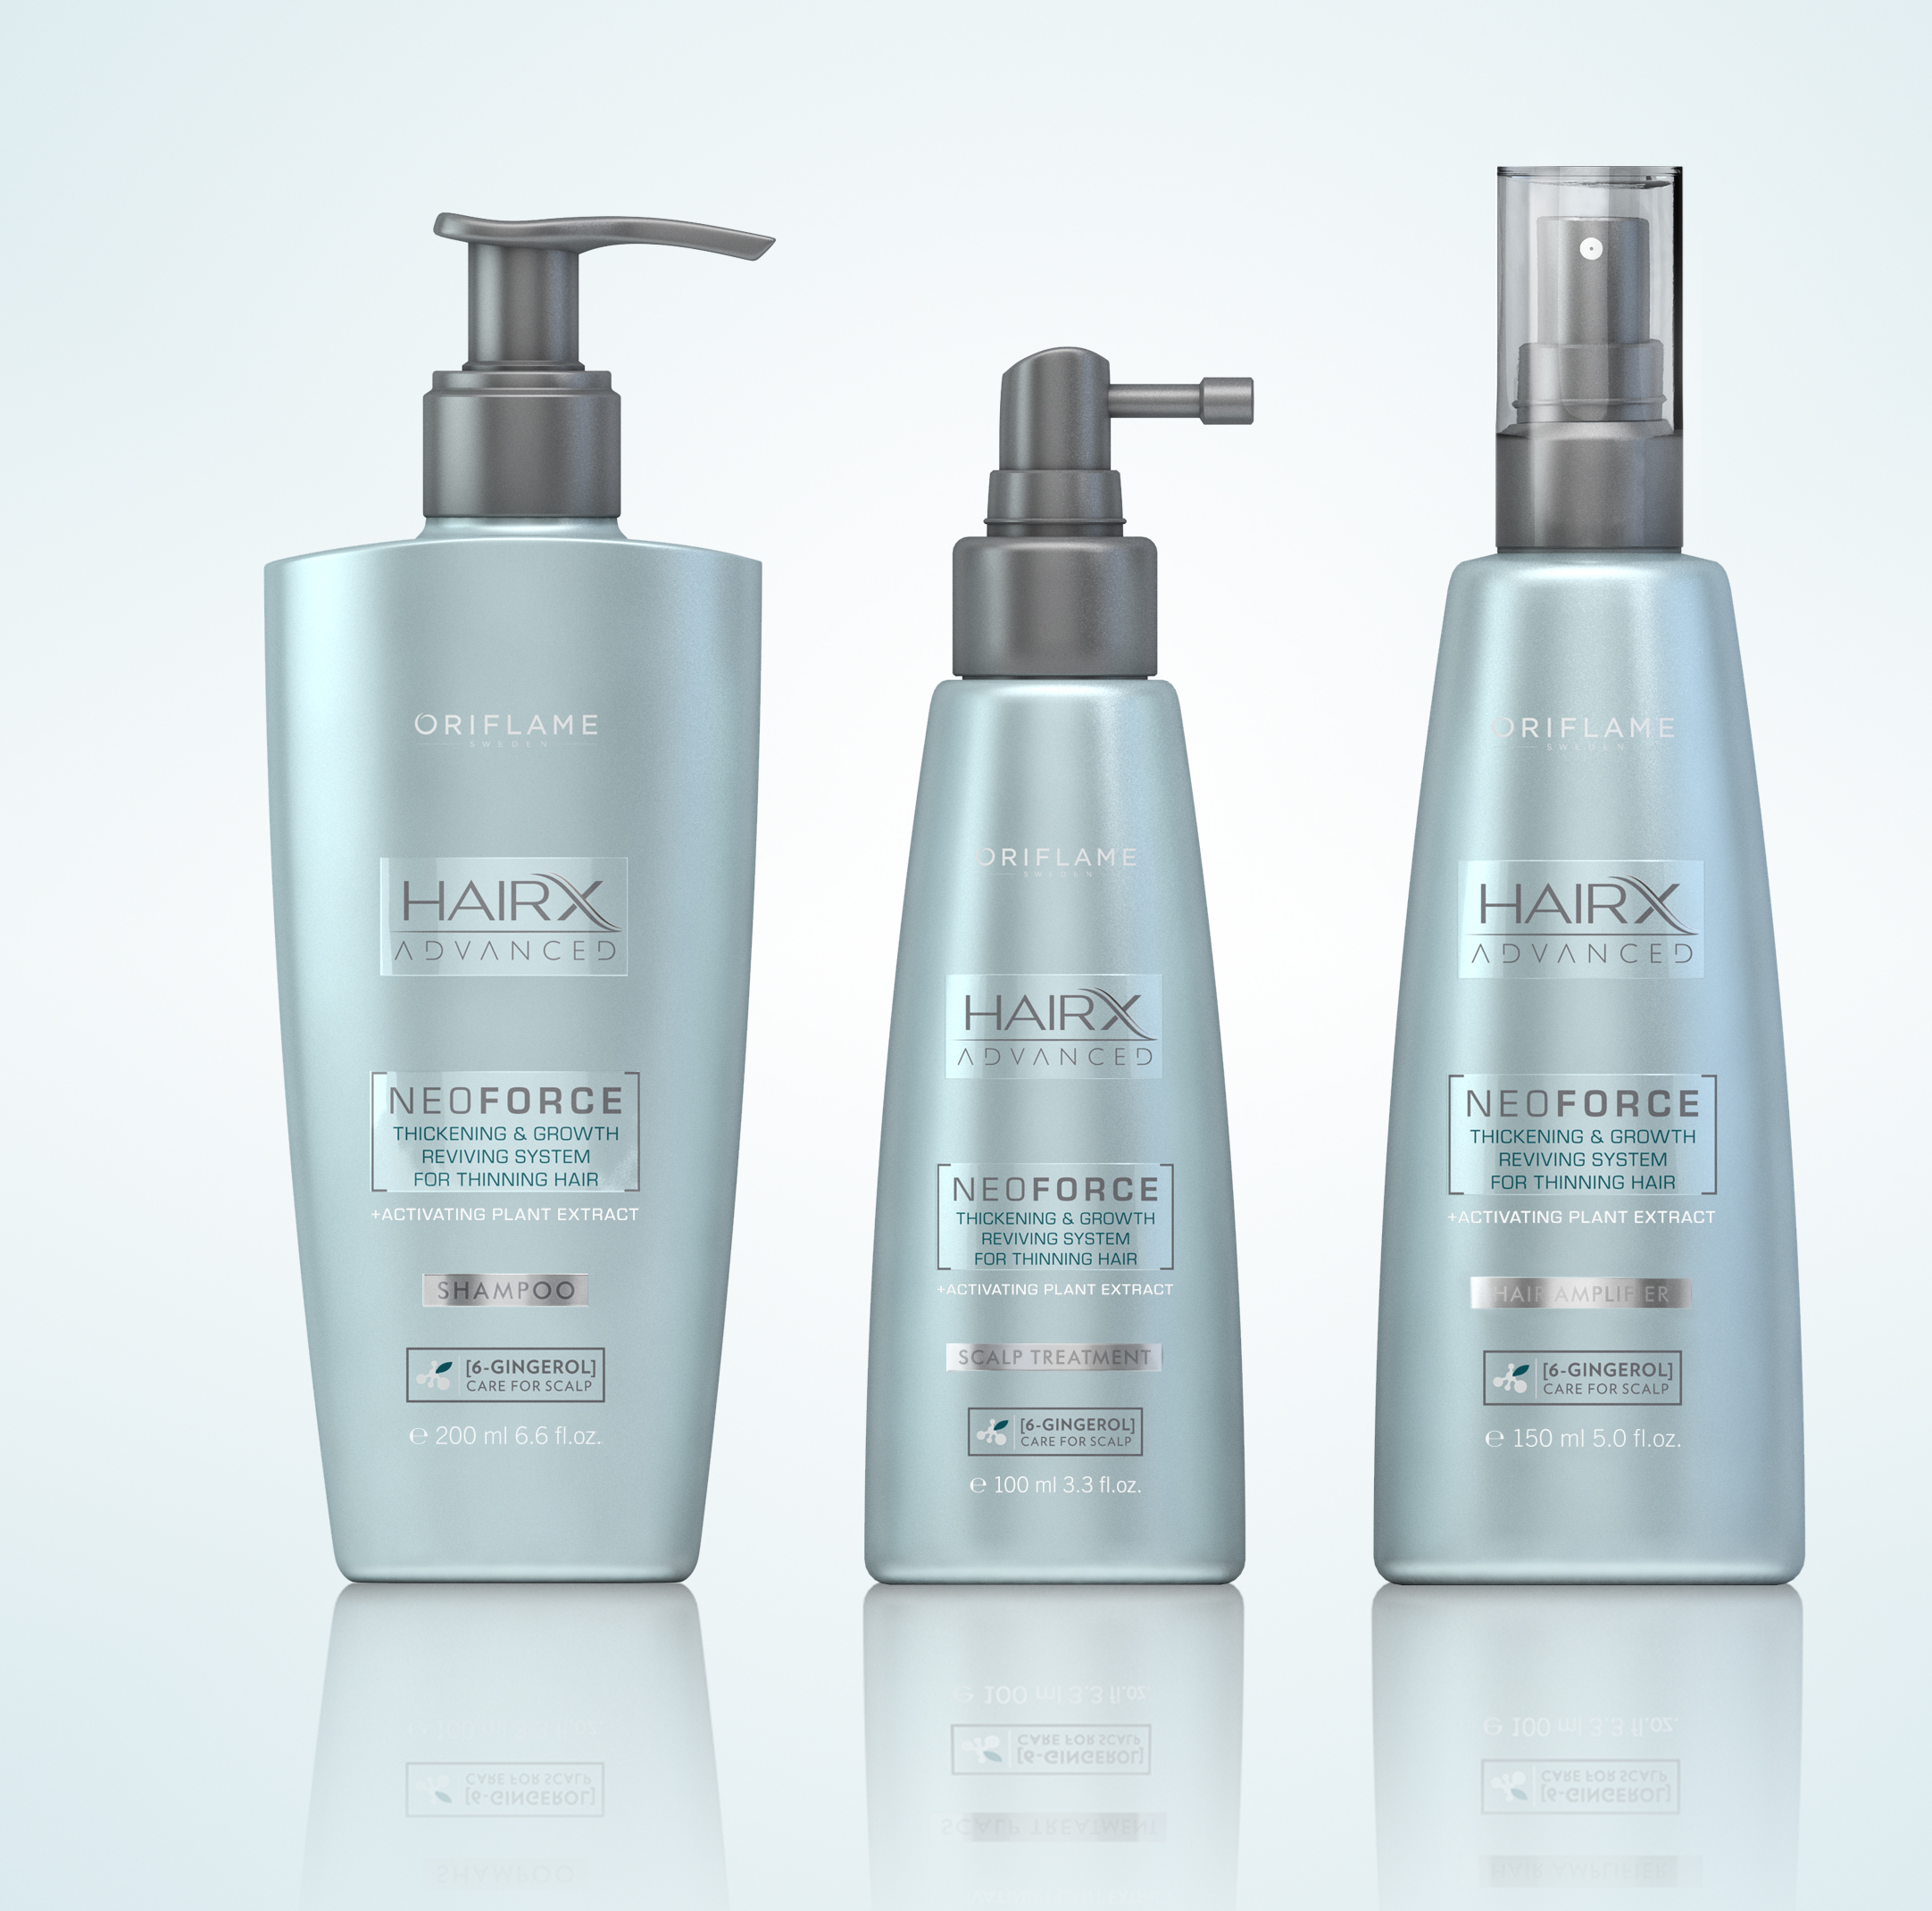 Photo: Oriflame's hair care range